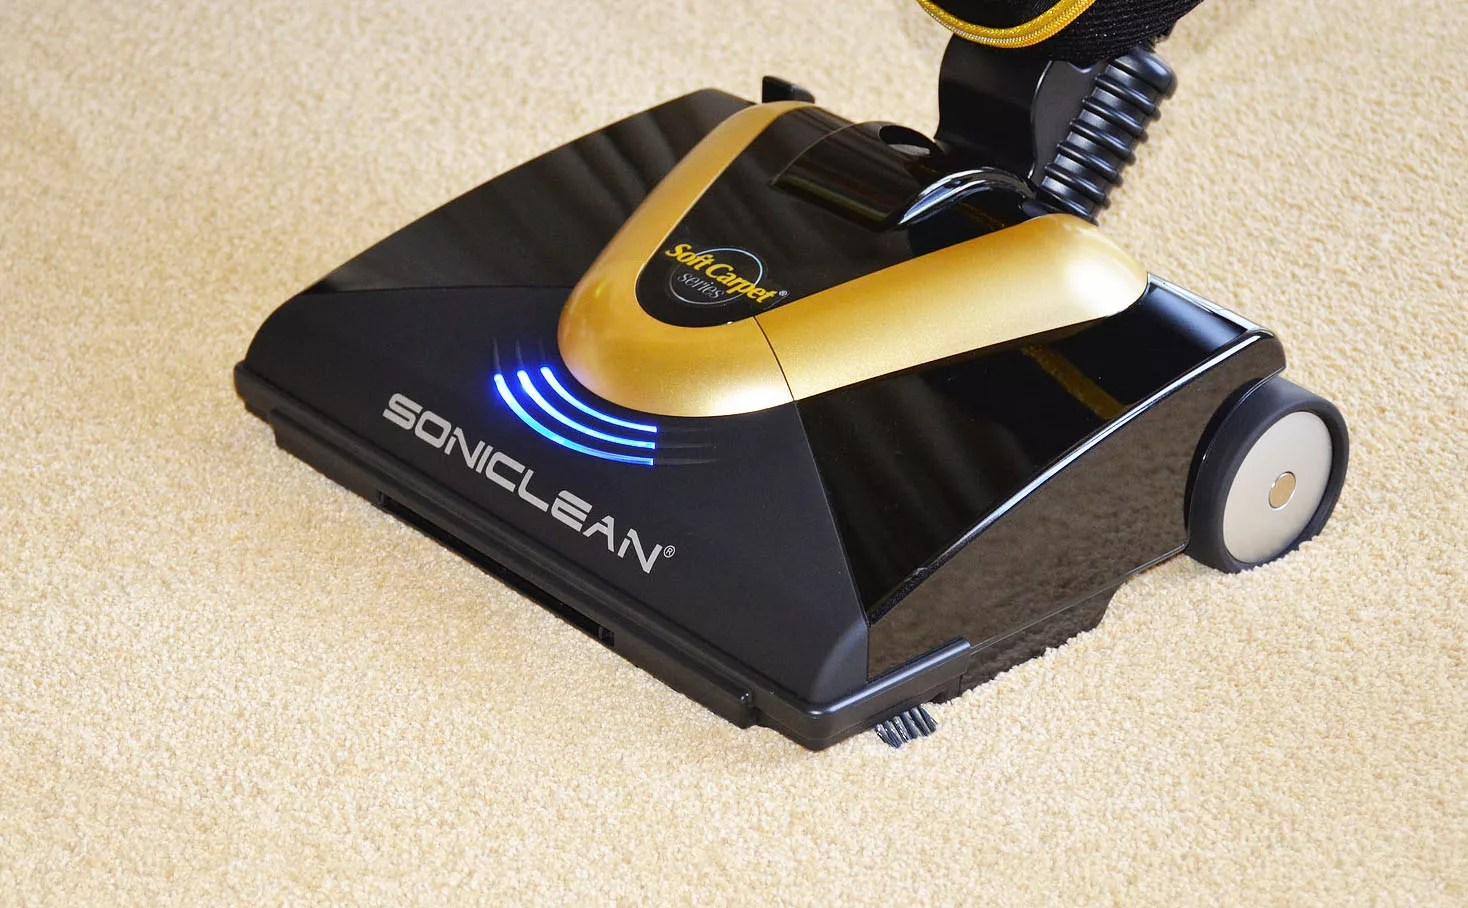 Soniclean Soft Carpet Vacuum Cleaner Is Recommended By Both Shaw And  Mohawk, Among Many Other Carpet Producers. It Comes With A Few Unique  Features That ...